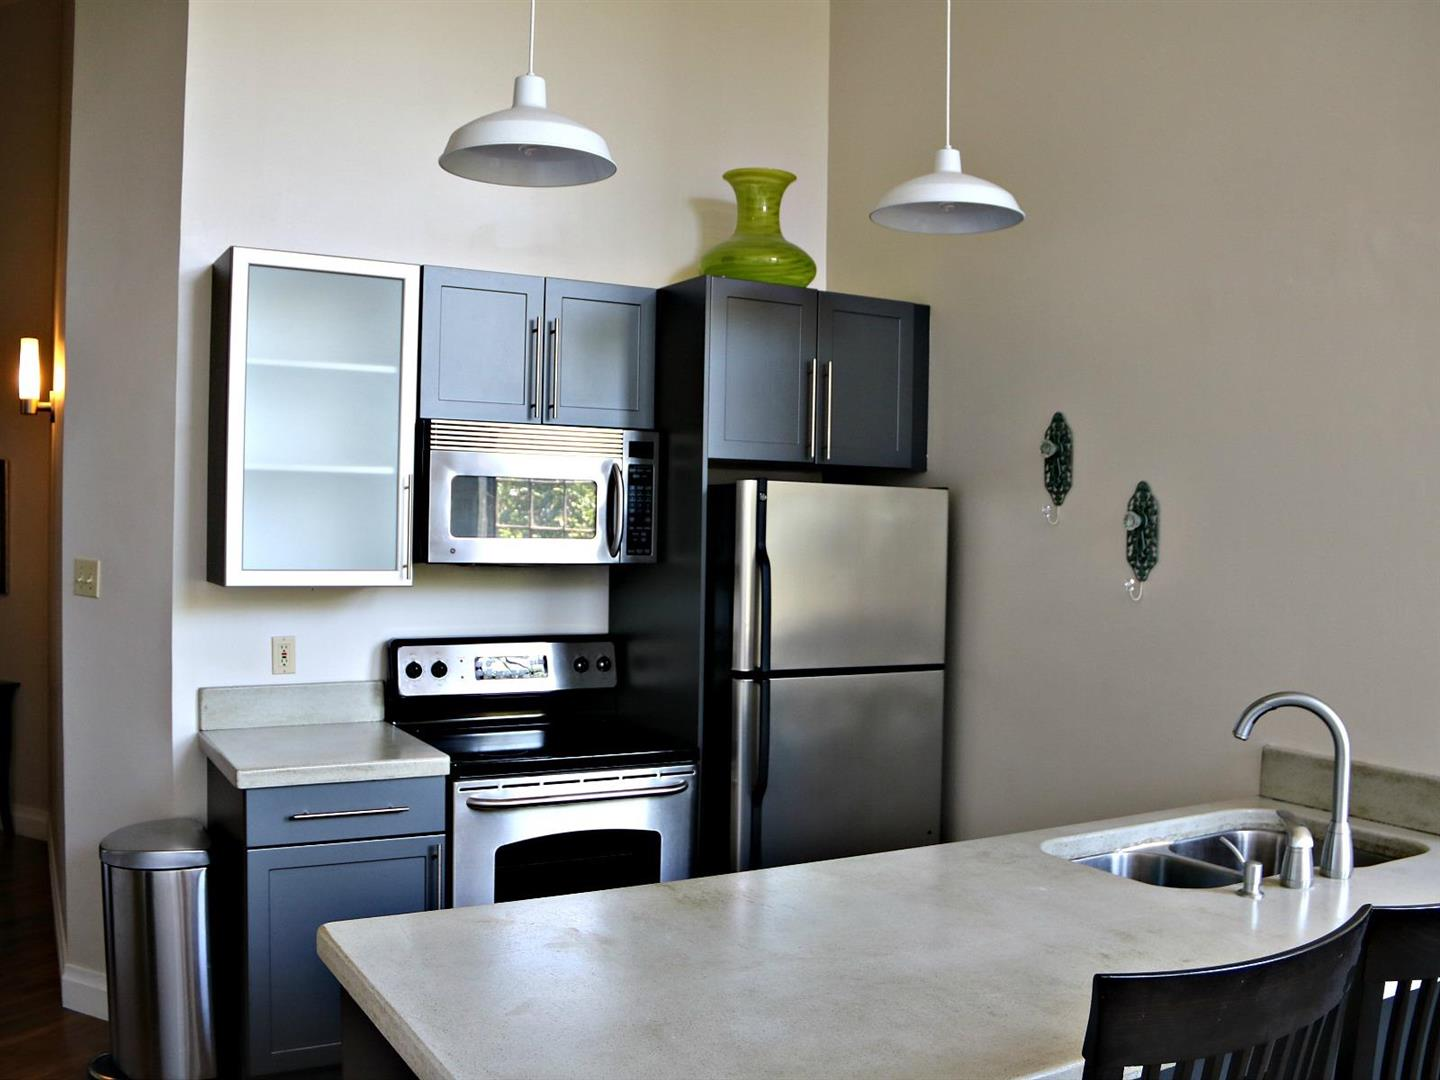 287CottonMillCondos,OpenKitchen.jpg